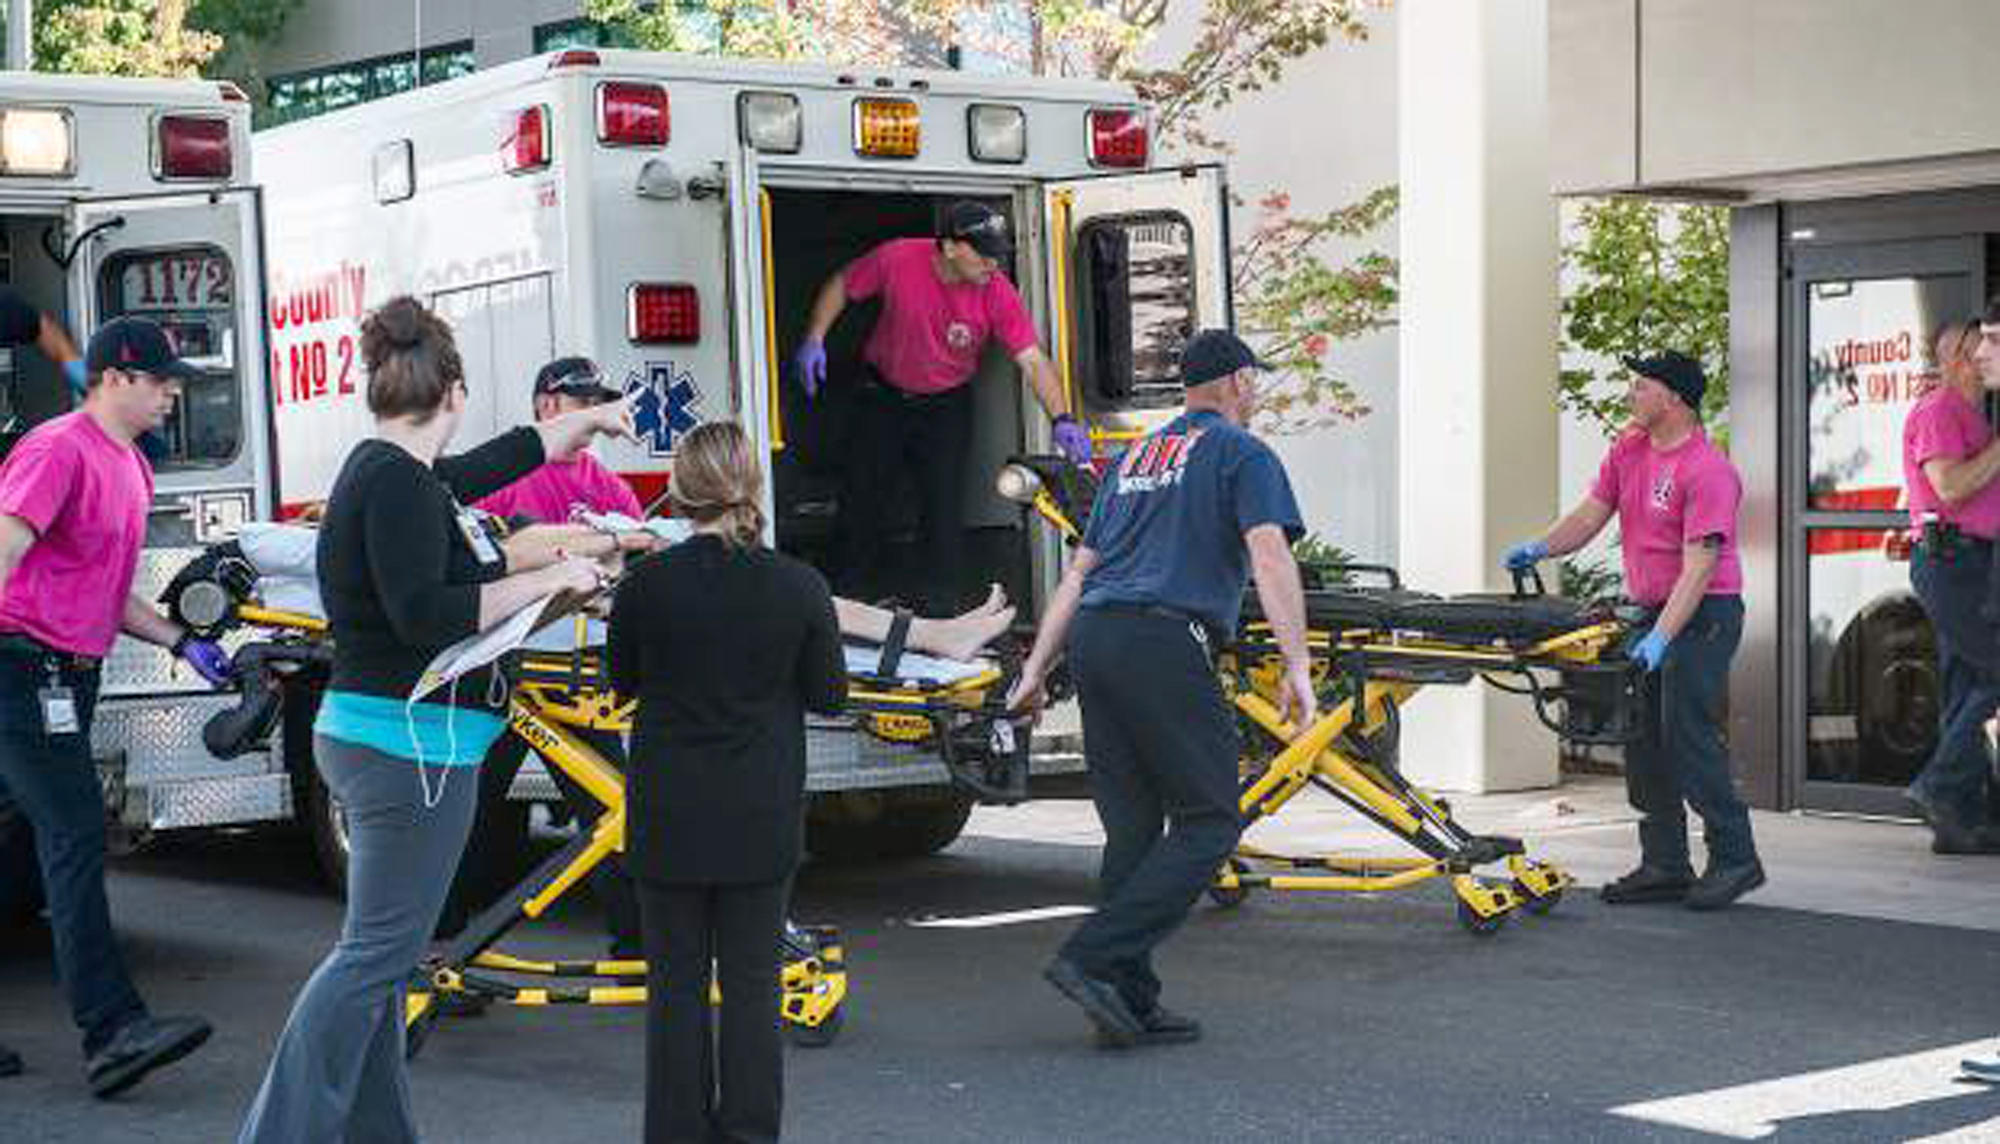 UPDATED 10 Confirmed Dead in Oregon Community College Campus Shooting images